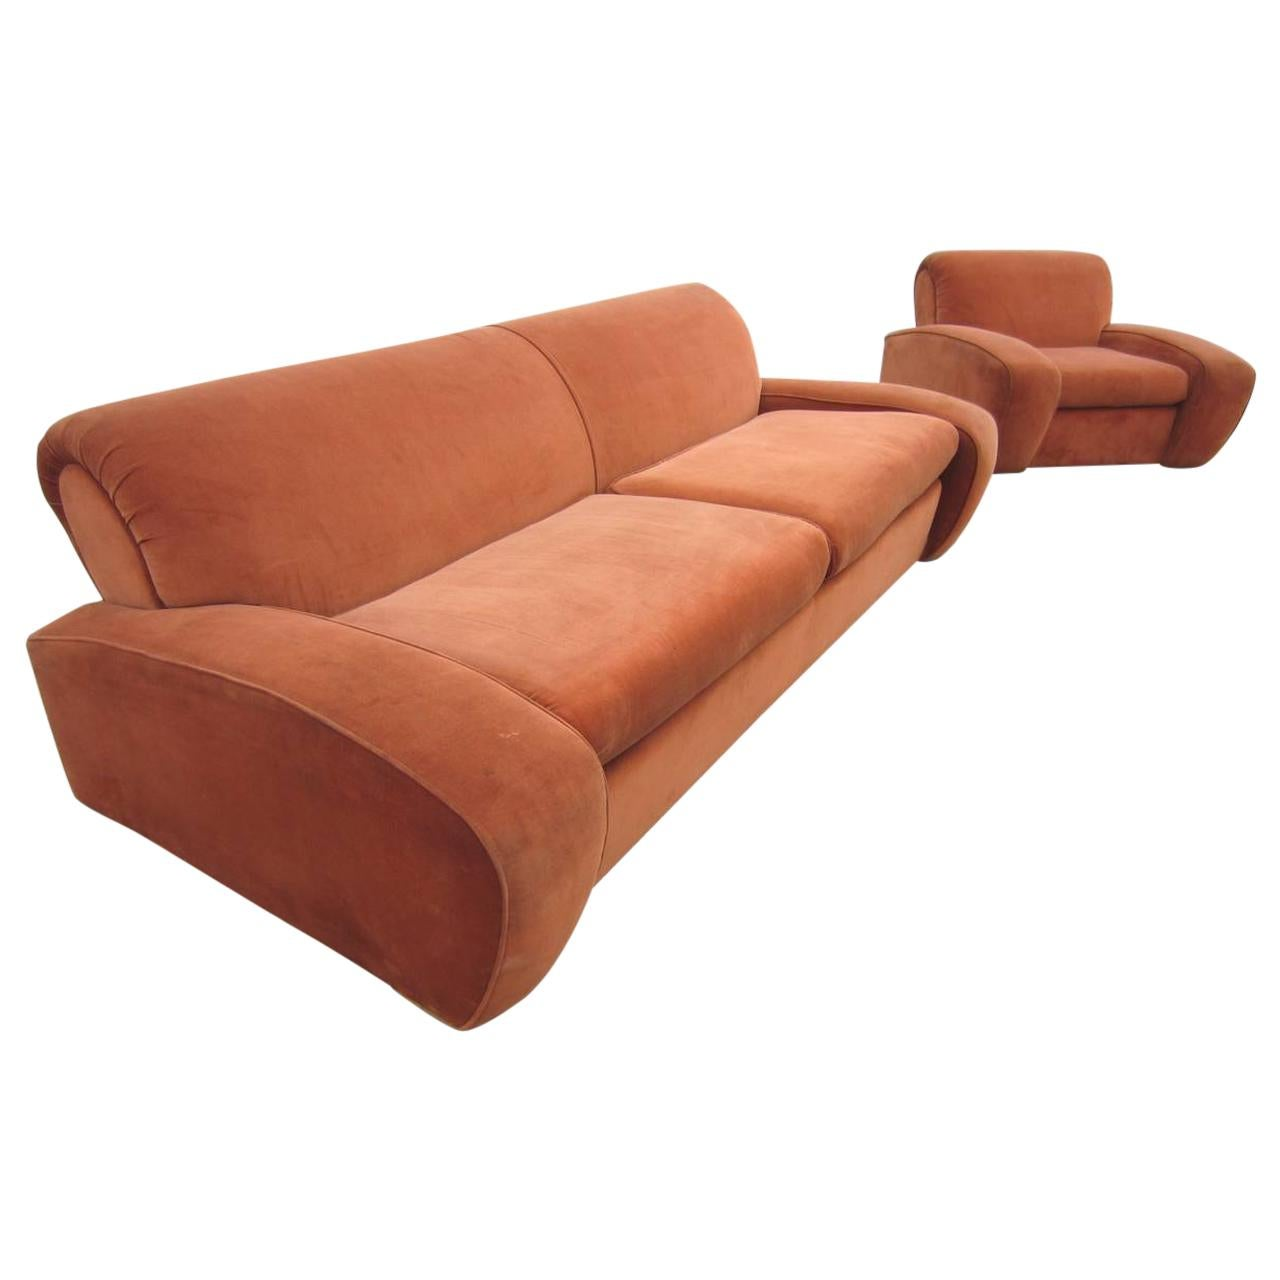 """1930's Art Deco Paul Frankl """"Speed"""" Lounge Chair and Sofa Set"""